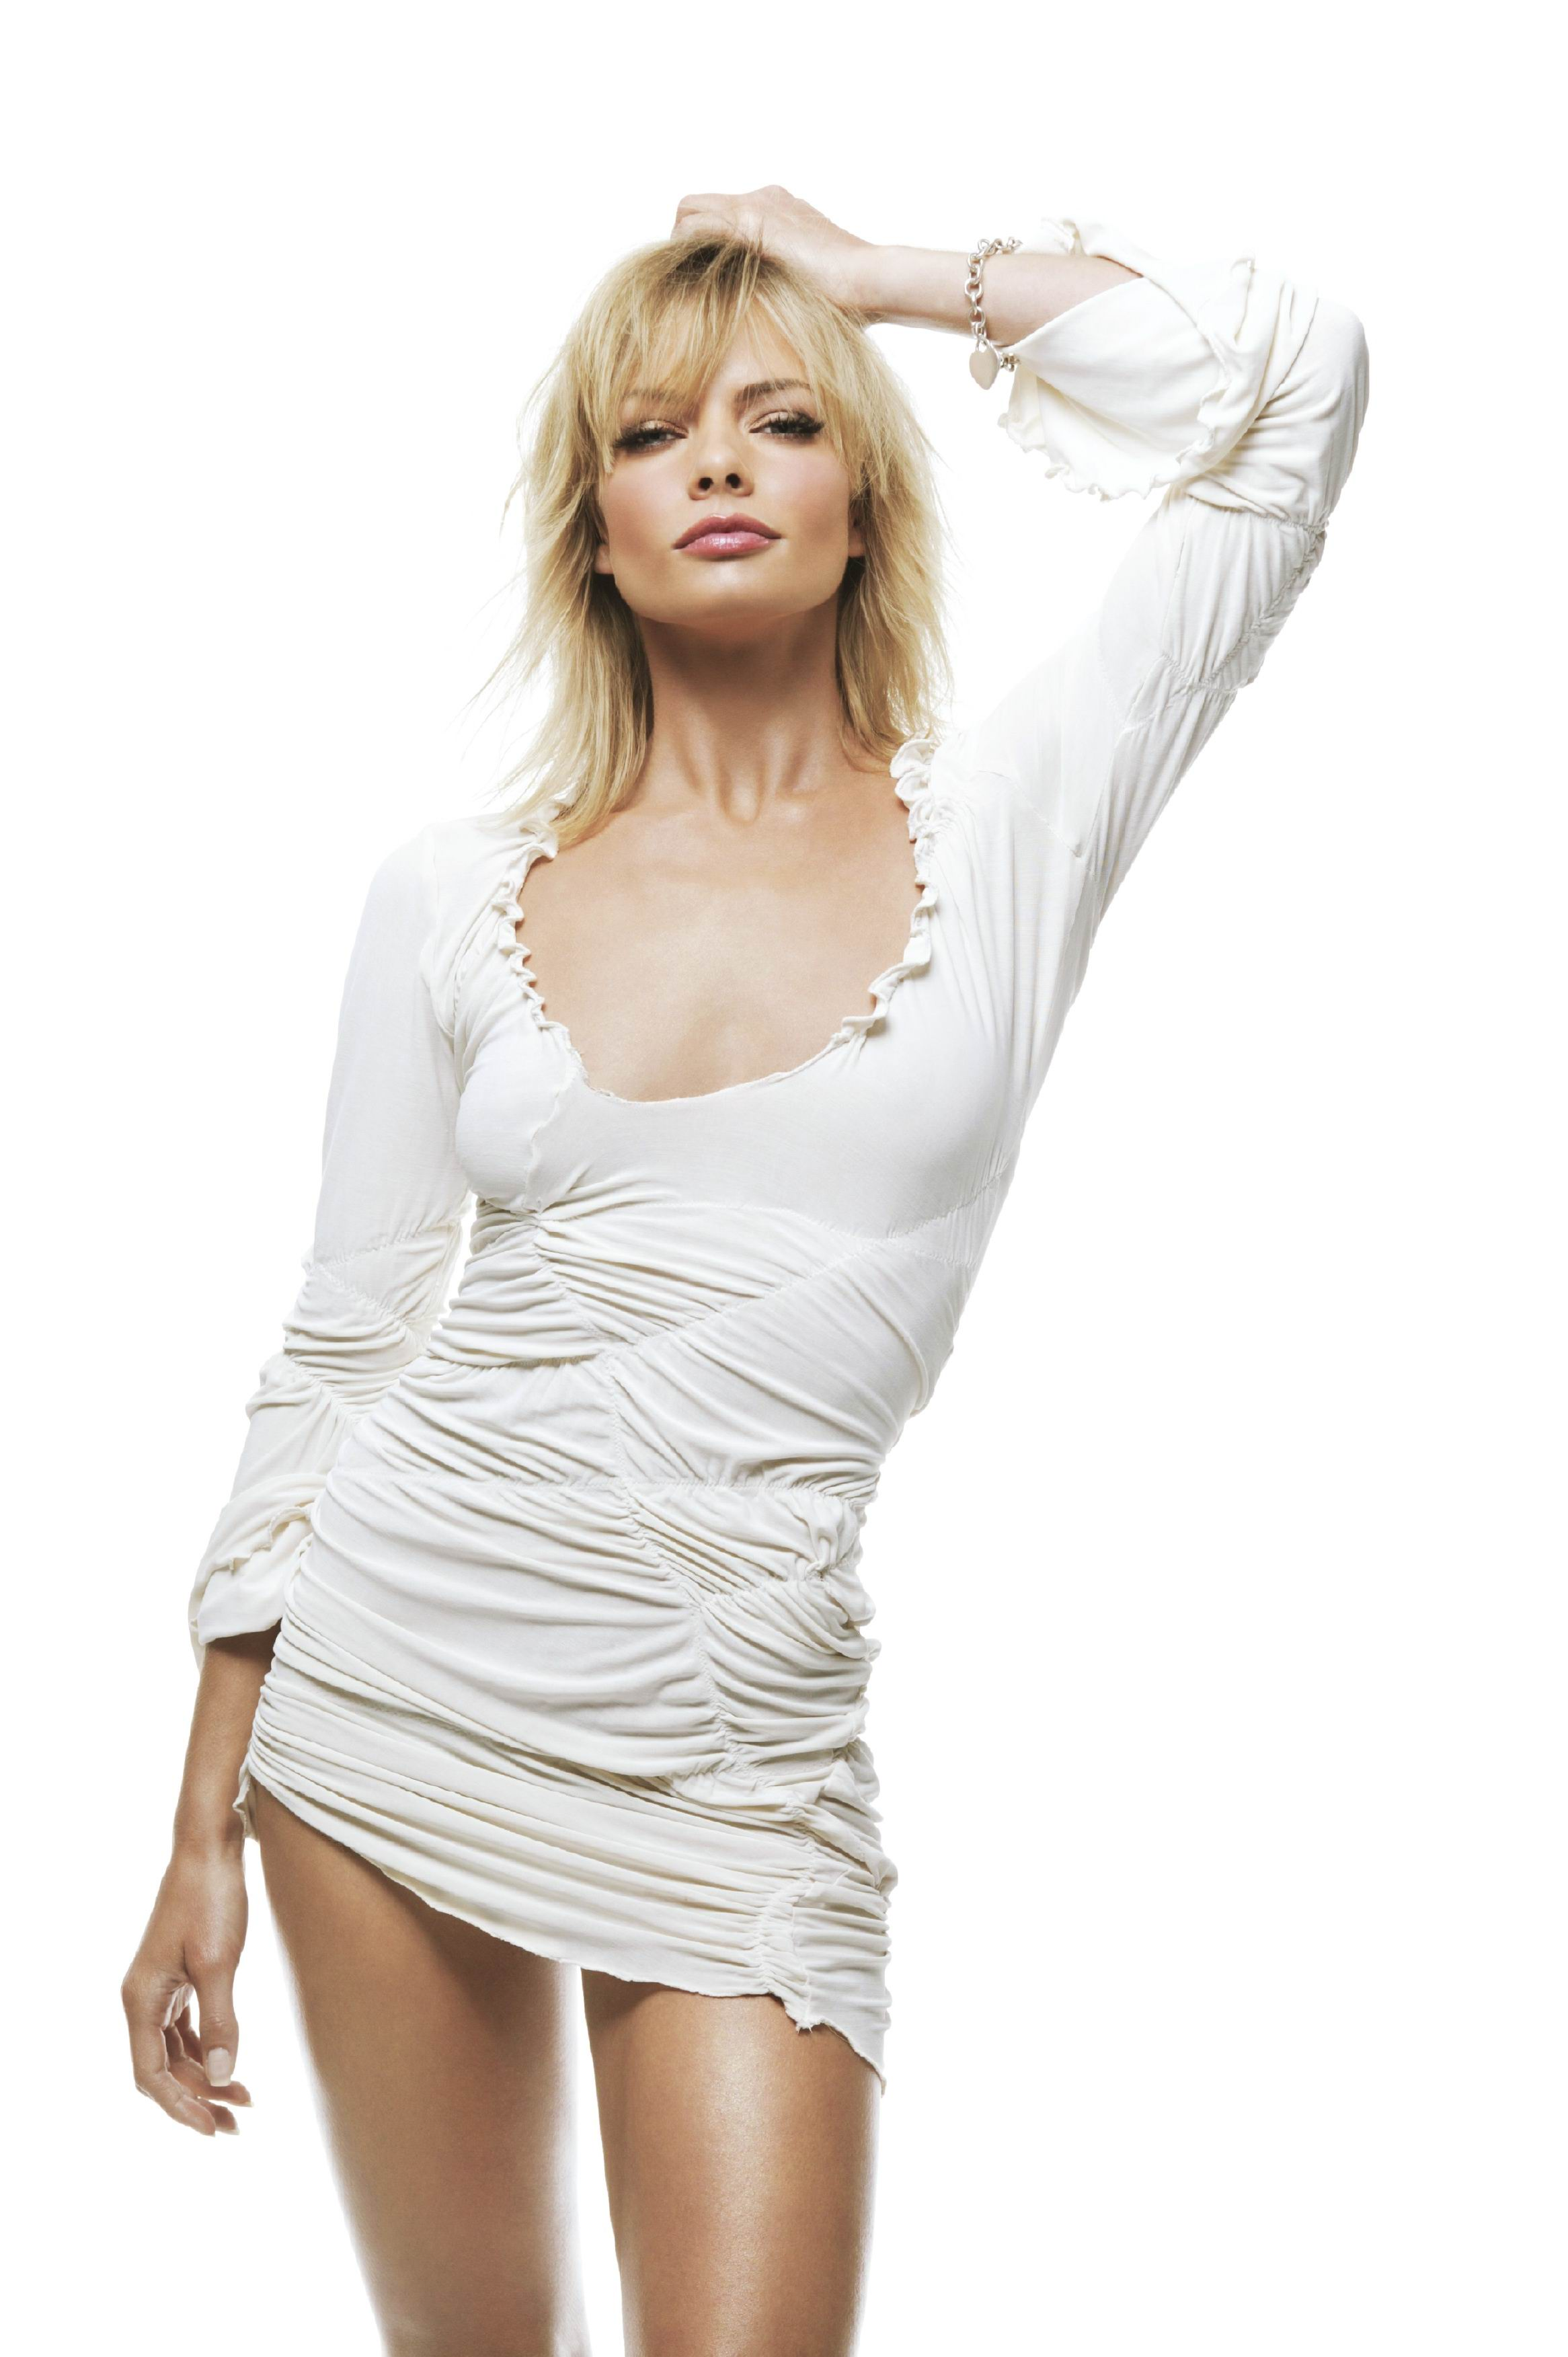 Jaime Pressly Nude - Page 2 Pictures, Naked, Oops, Topless -3360